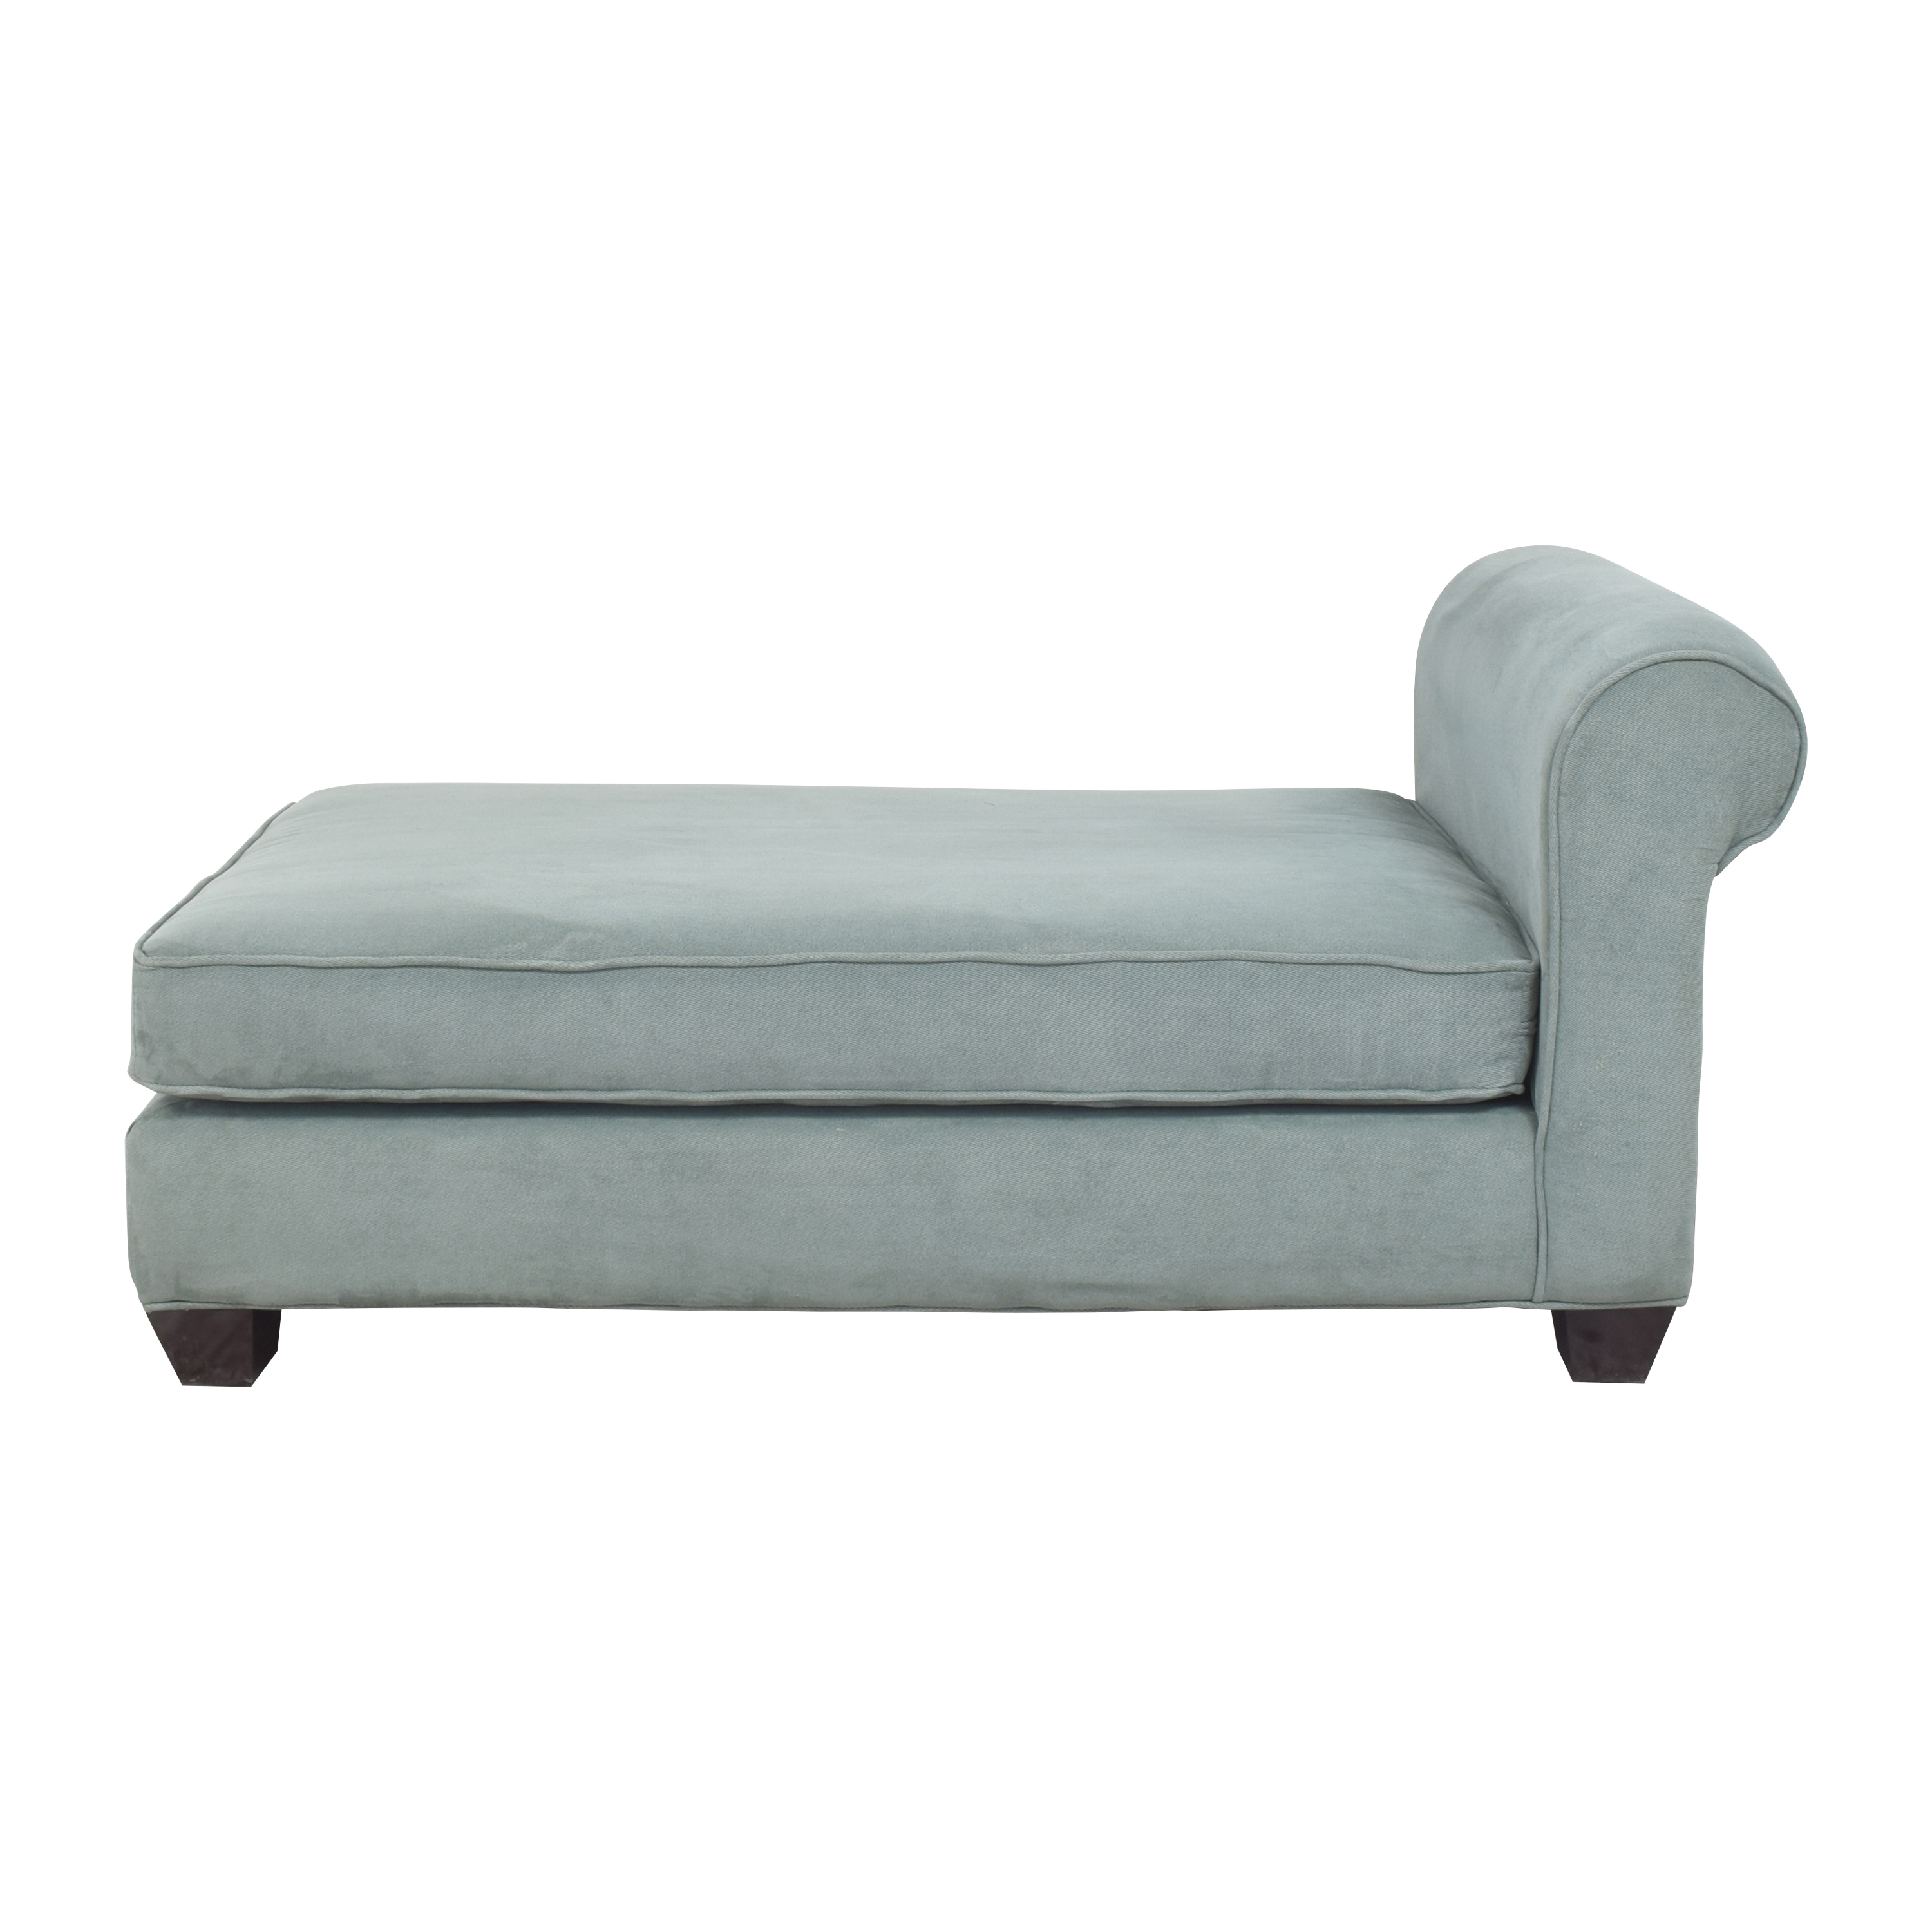 buy  Modern Chaise Lounge online